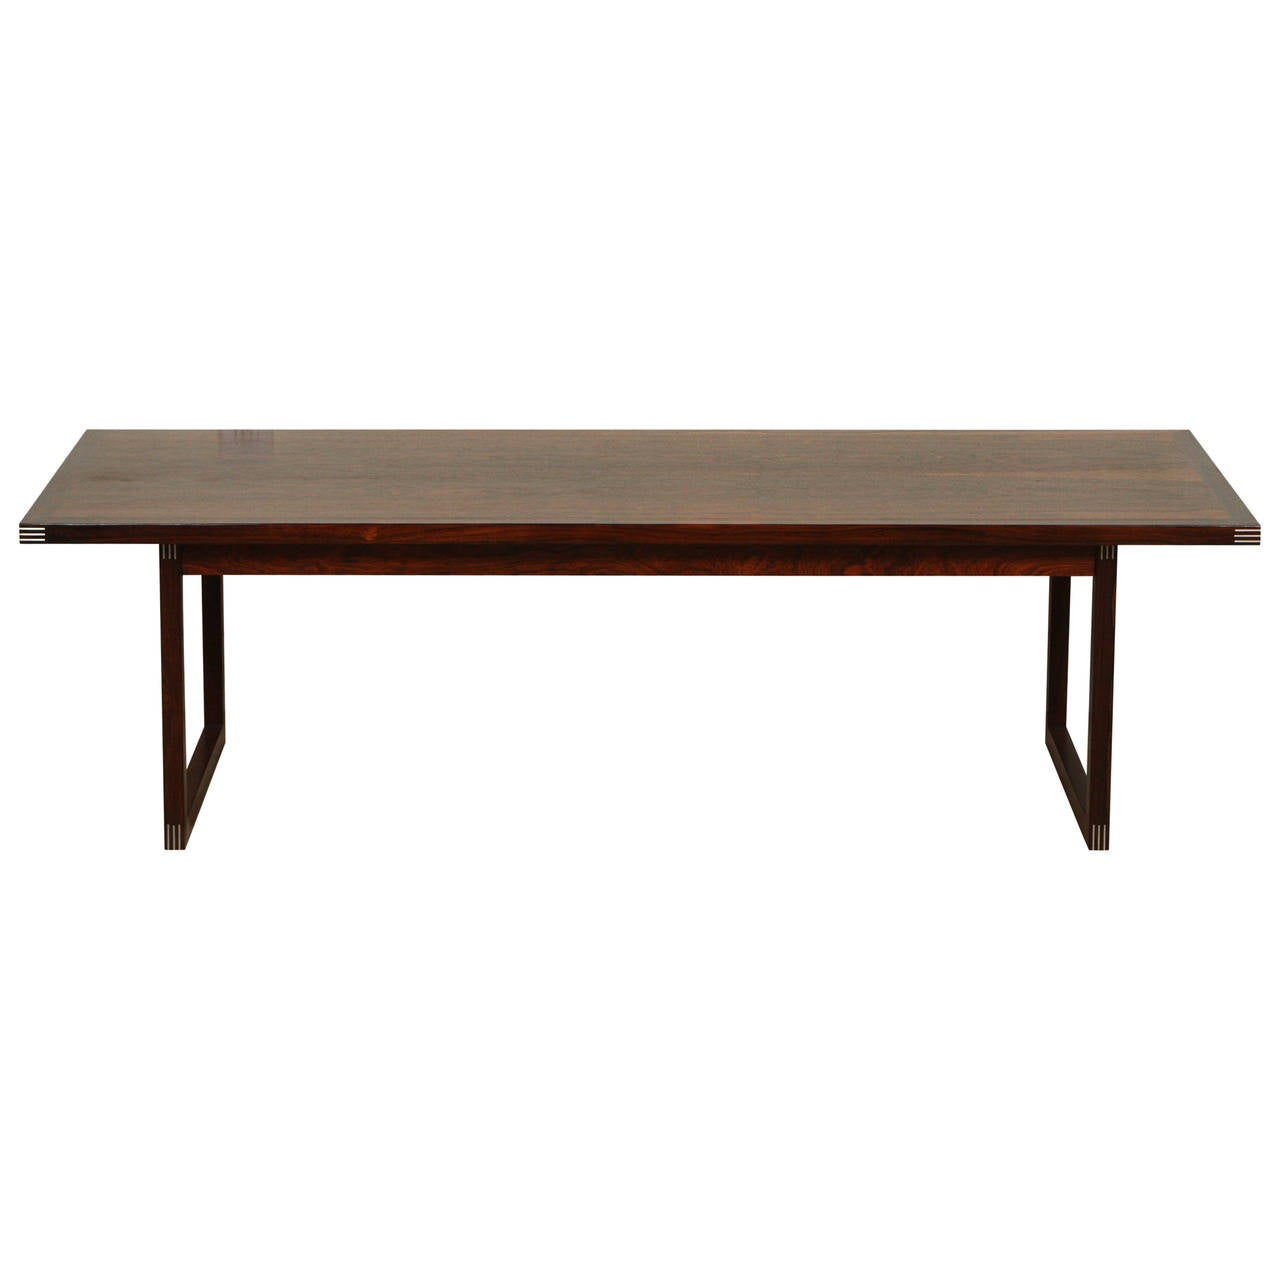 Rosewood Coffee Table With Inlaid Metal Corners By